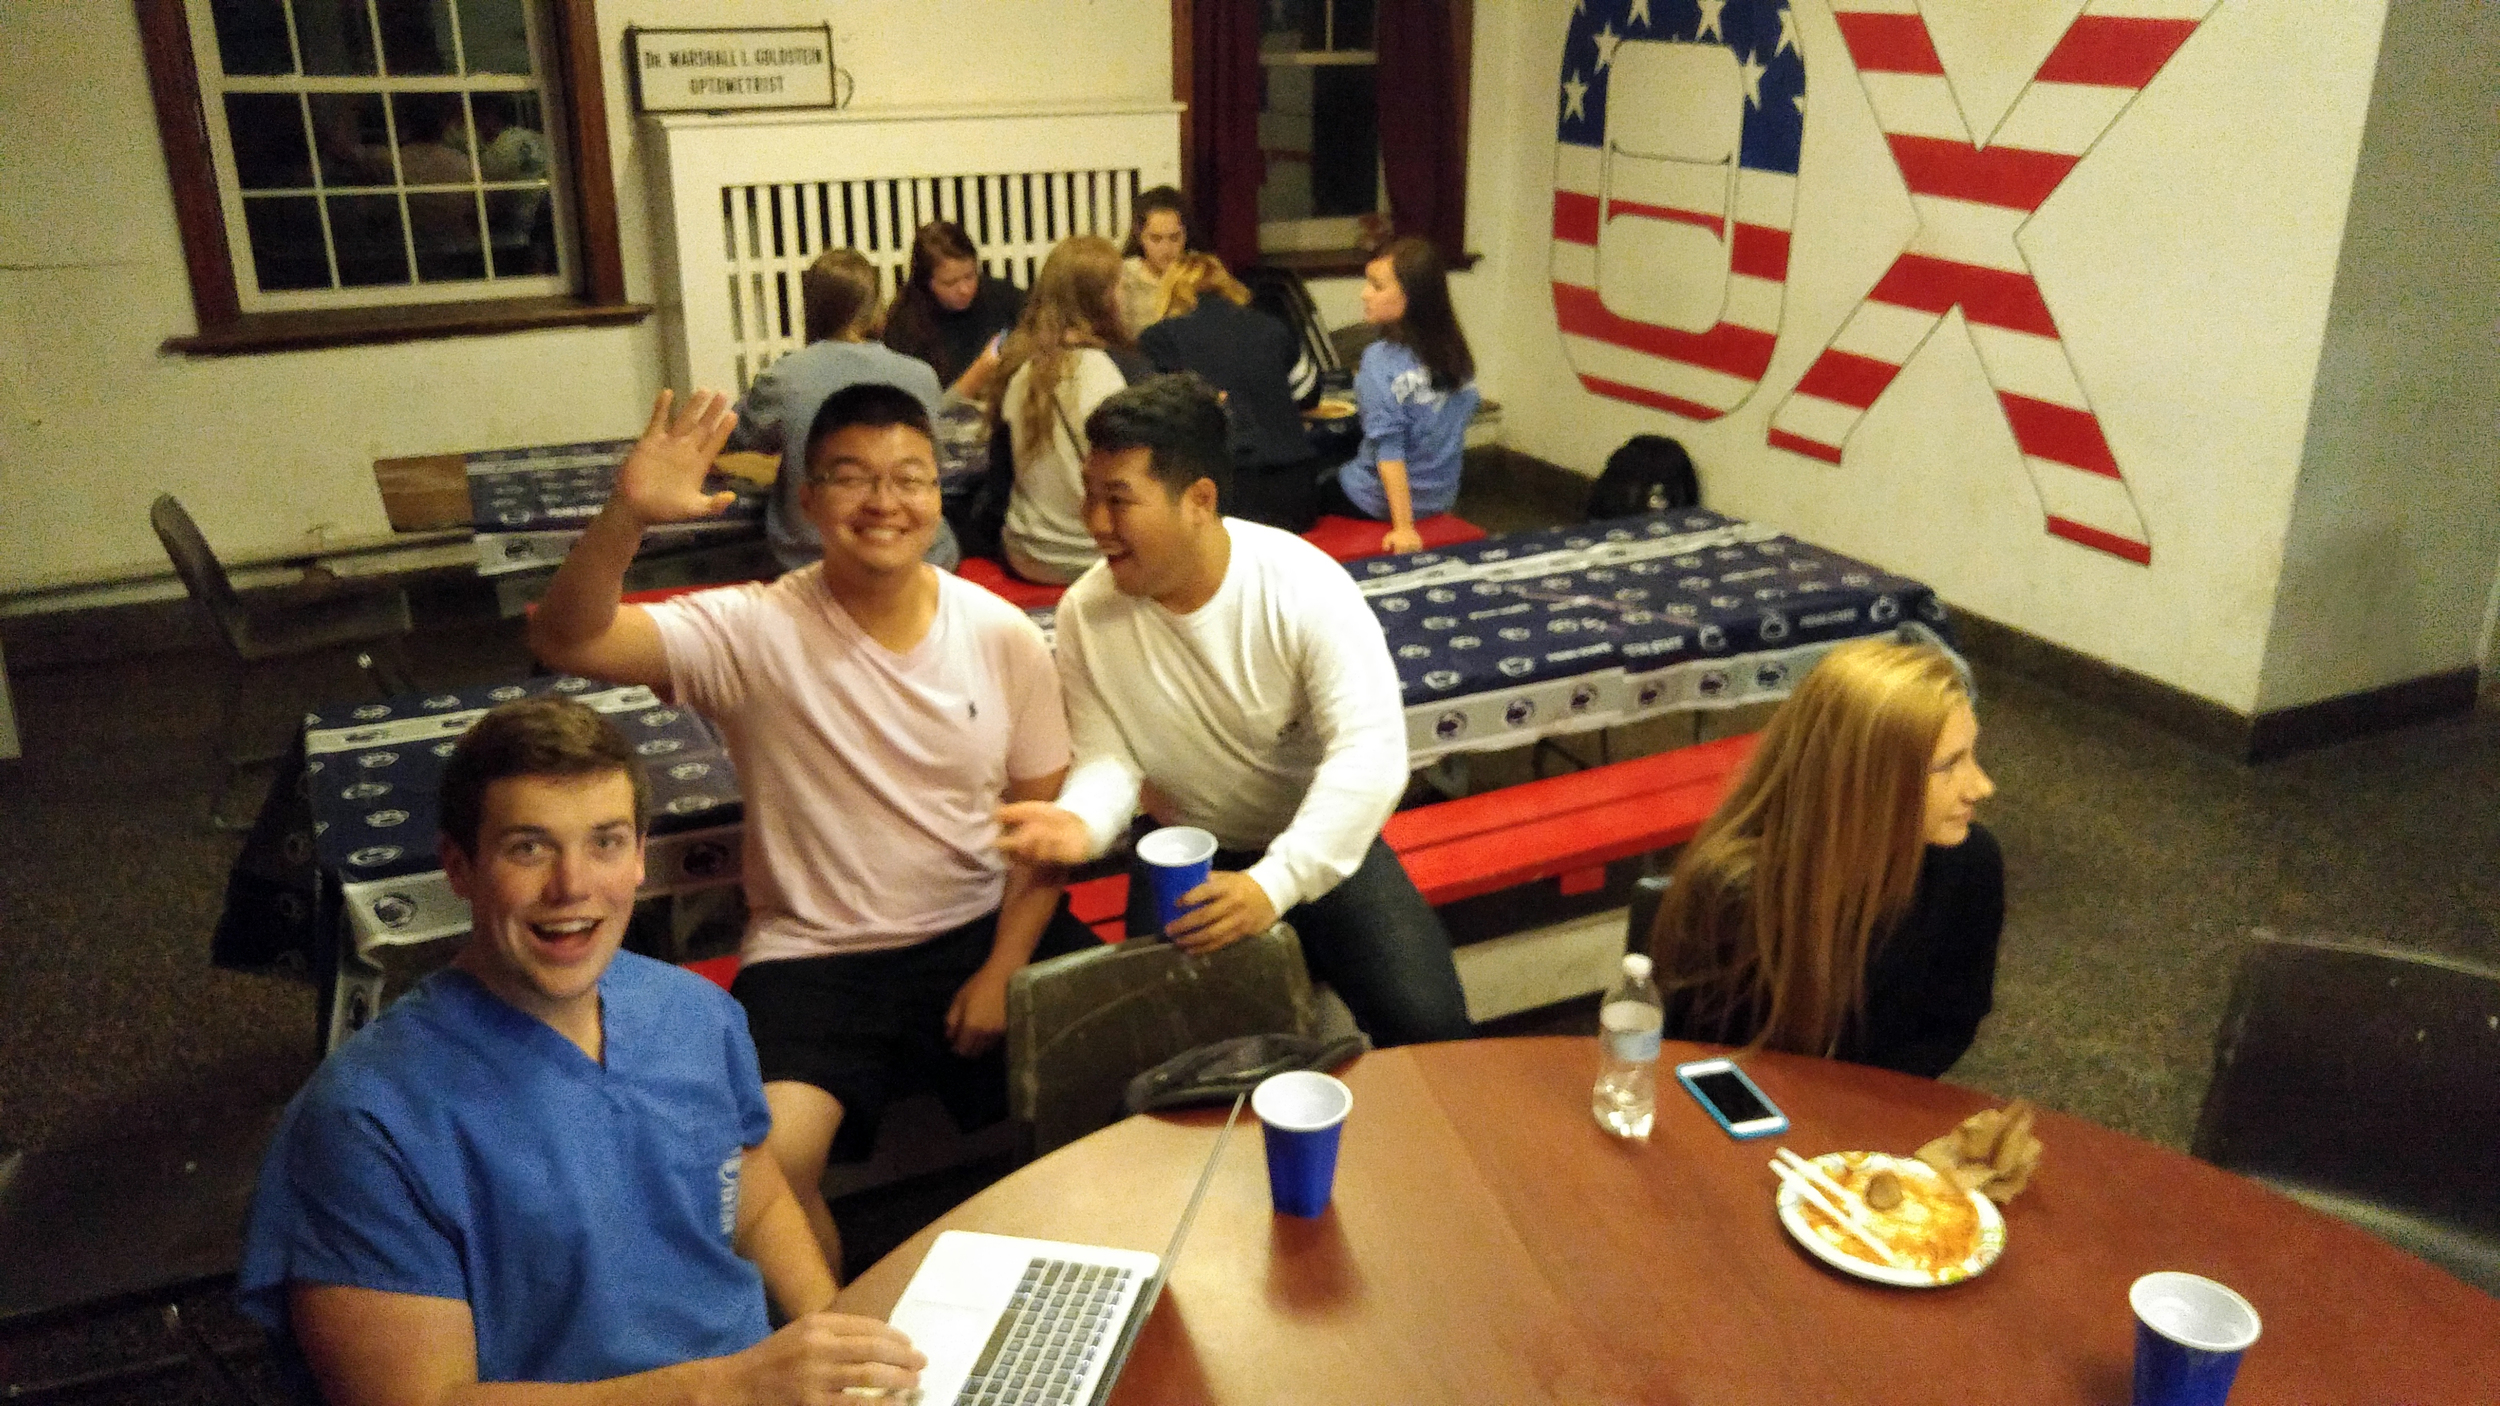 Brothers cooked and prepared pasta fdinner or guests for 4 hours in the basement in THON Fundraiser - L to R: Ryan Gattoni, Andrew Sie, Danny Lim